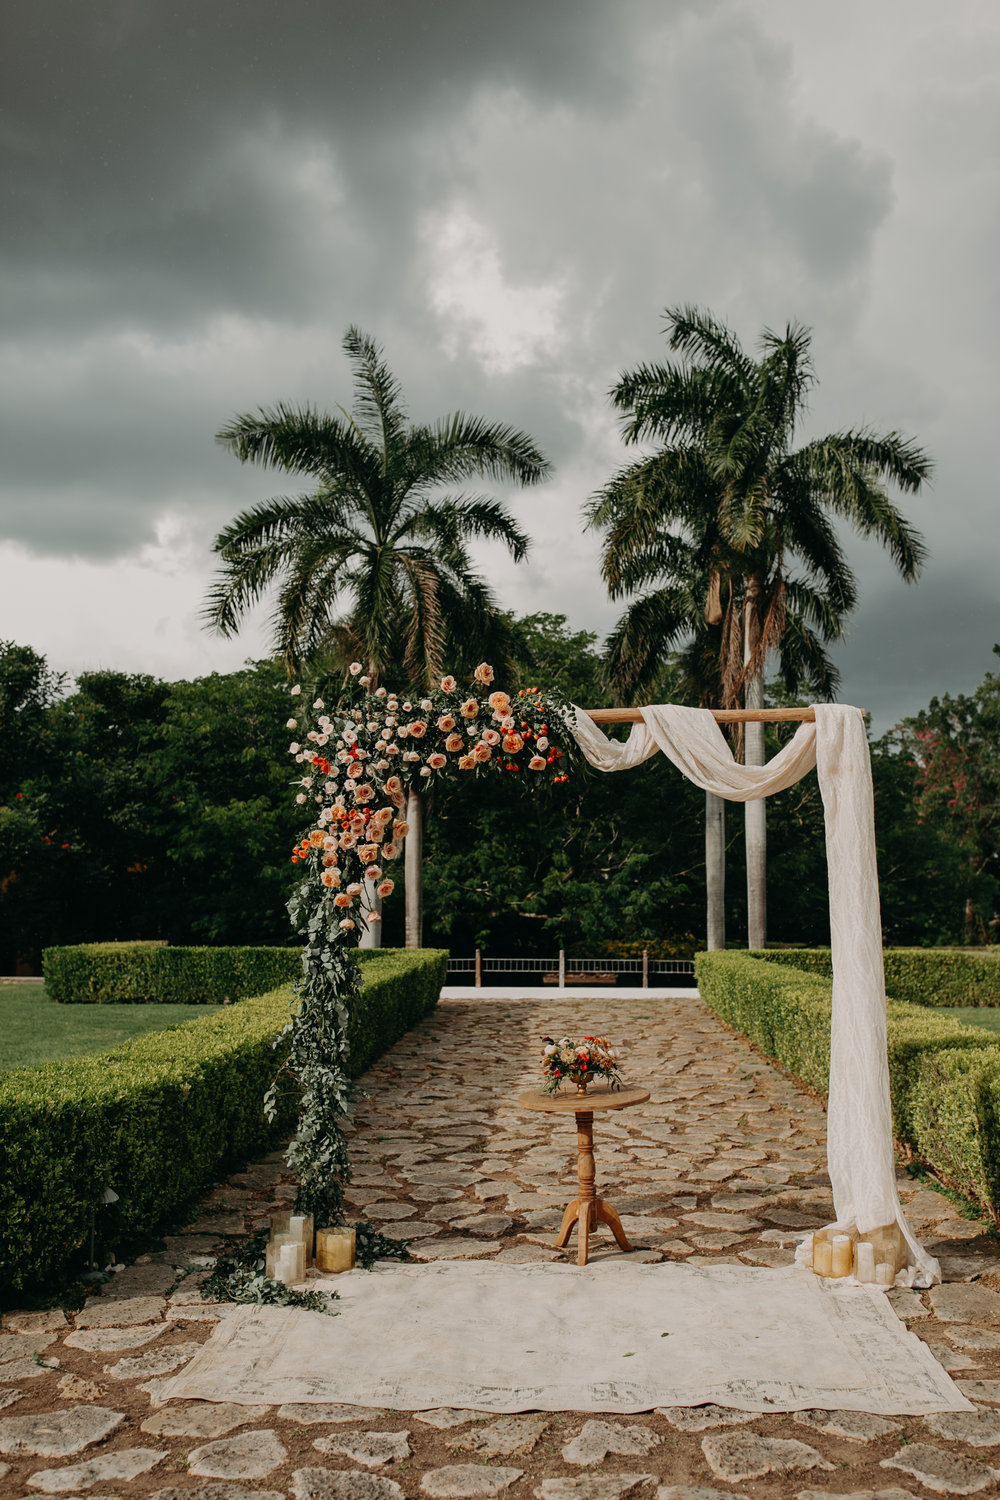 Hacienda Temozon Yucatan Mexico Wedding | Ida & Peter Emily Magers Photography-884.jpg